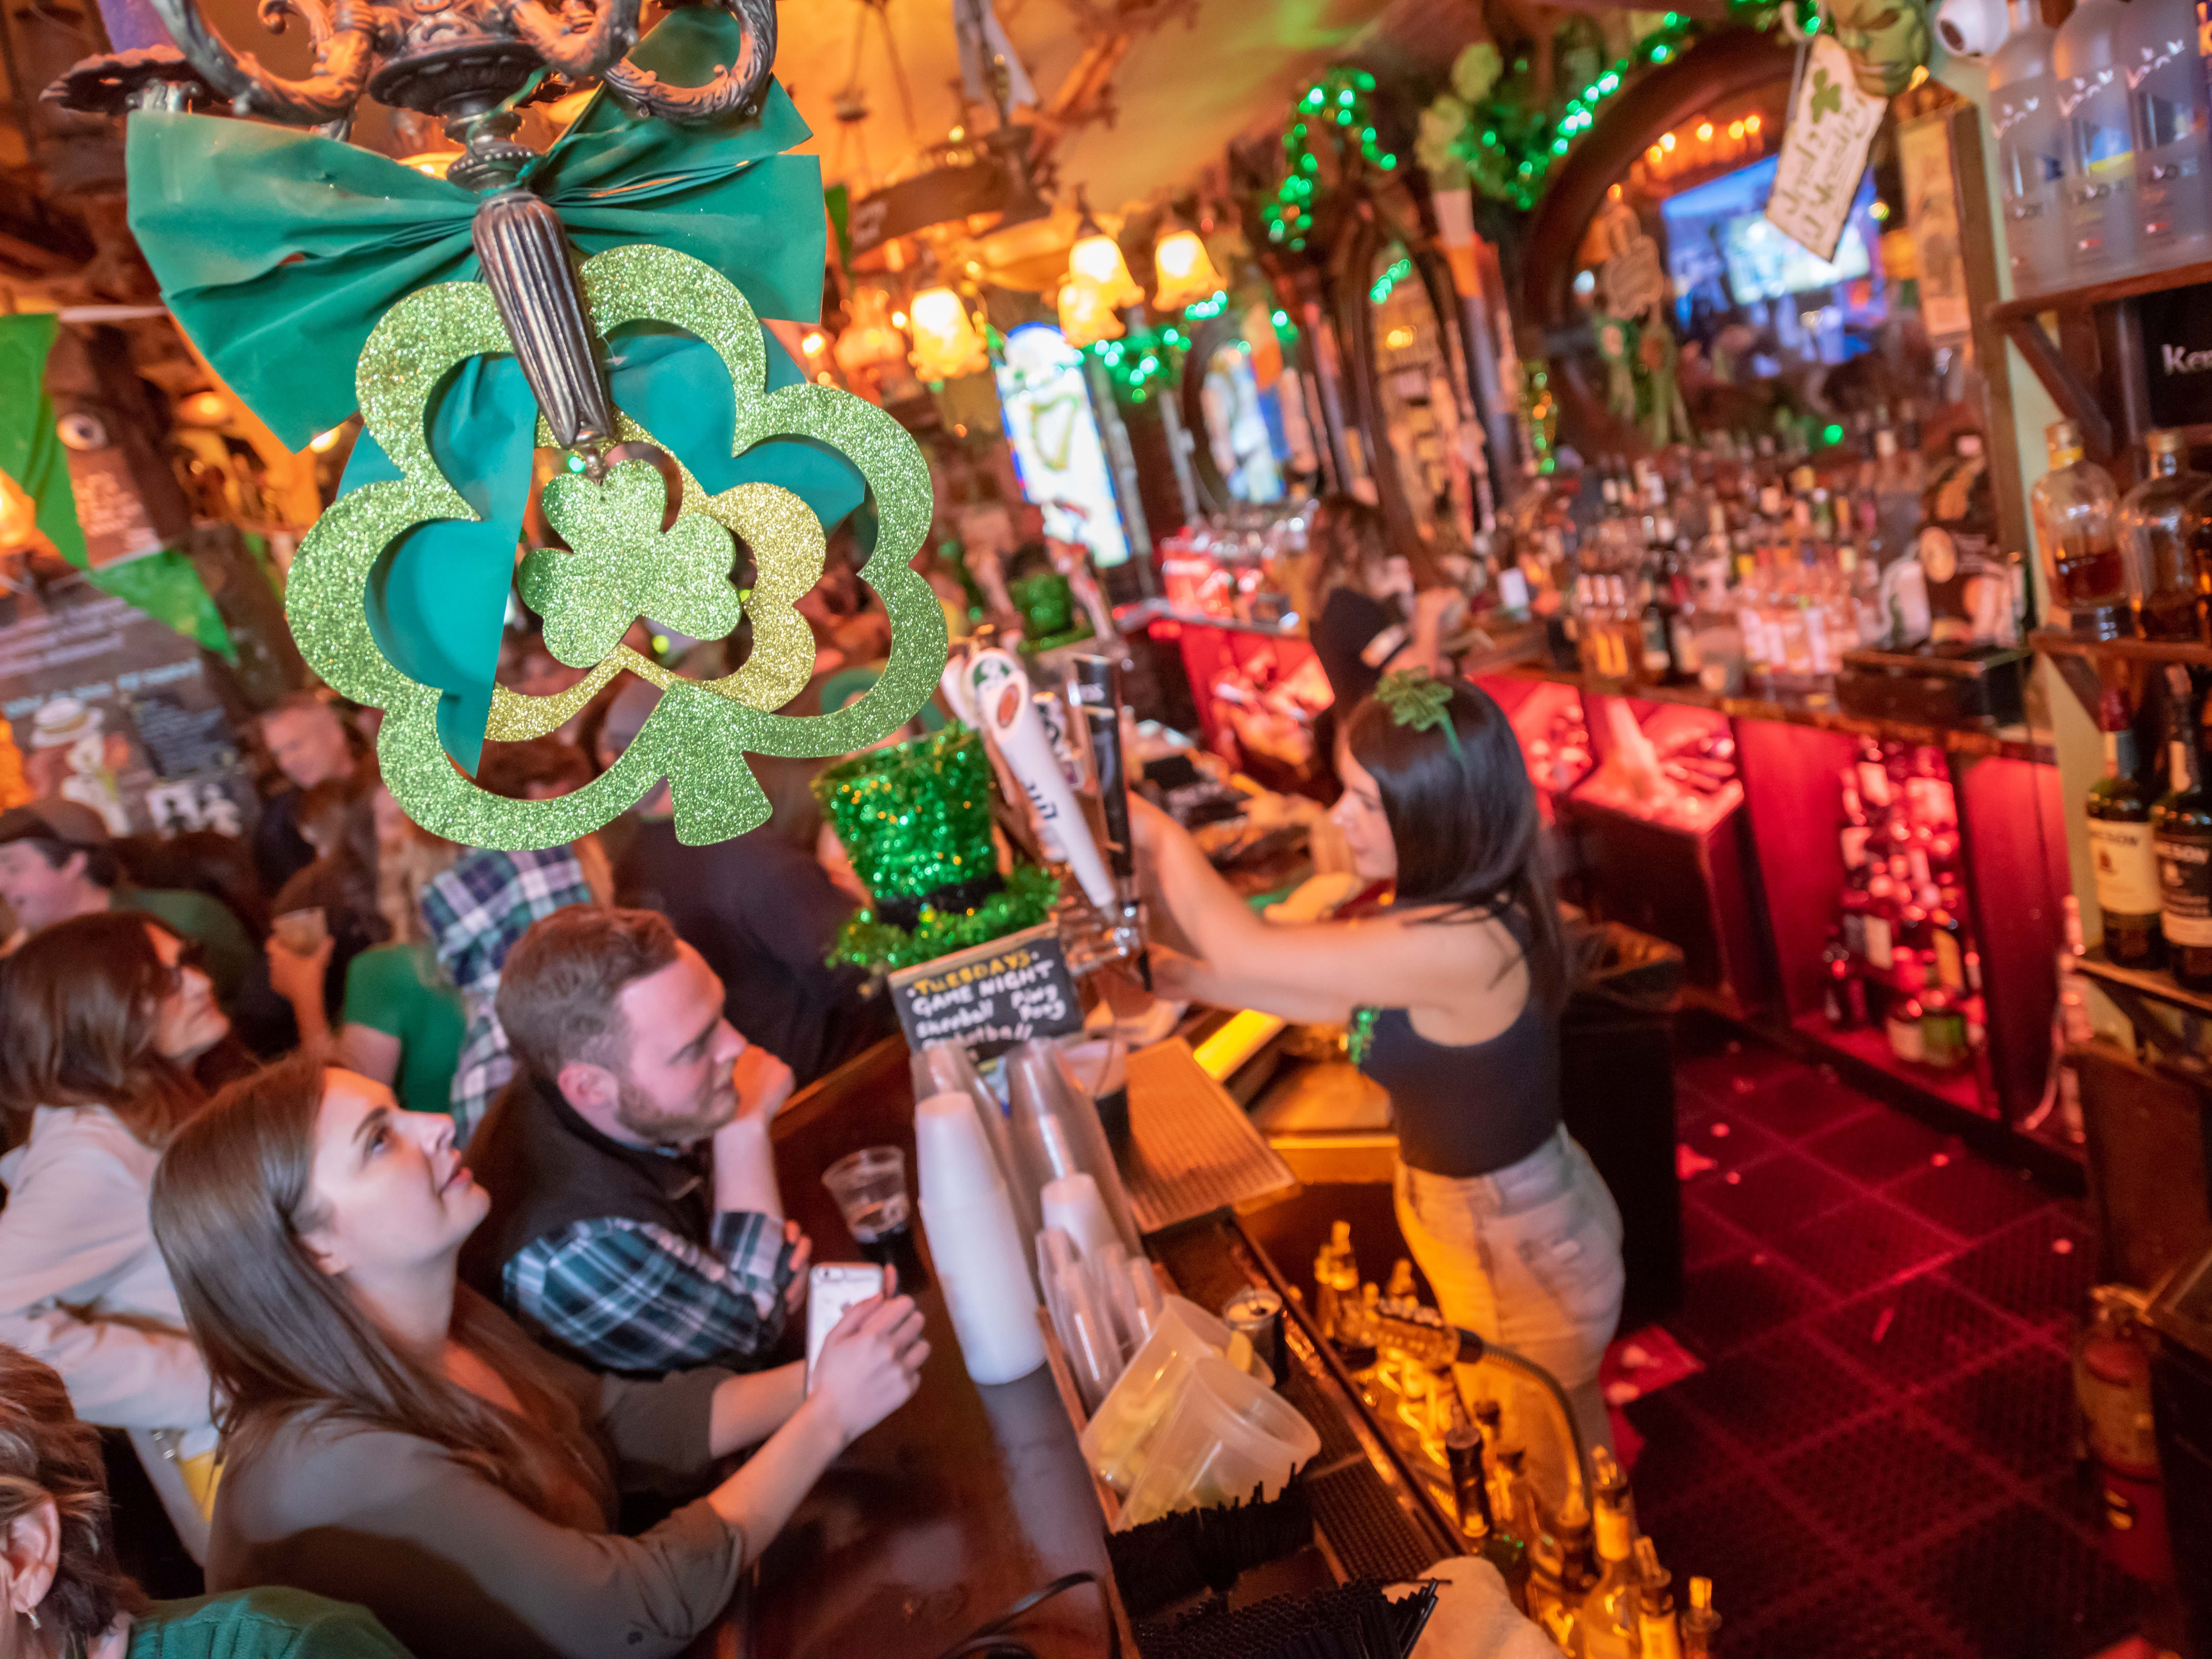 St. Patrick's Day party at Johnny Mac House of Spirits on Main Street in Asbury Park on March 19, 2019.